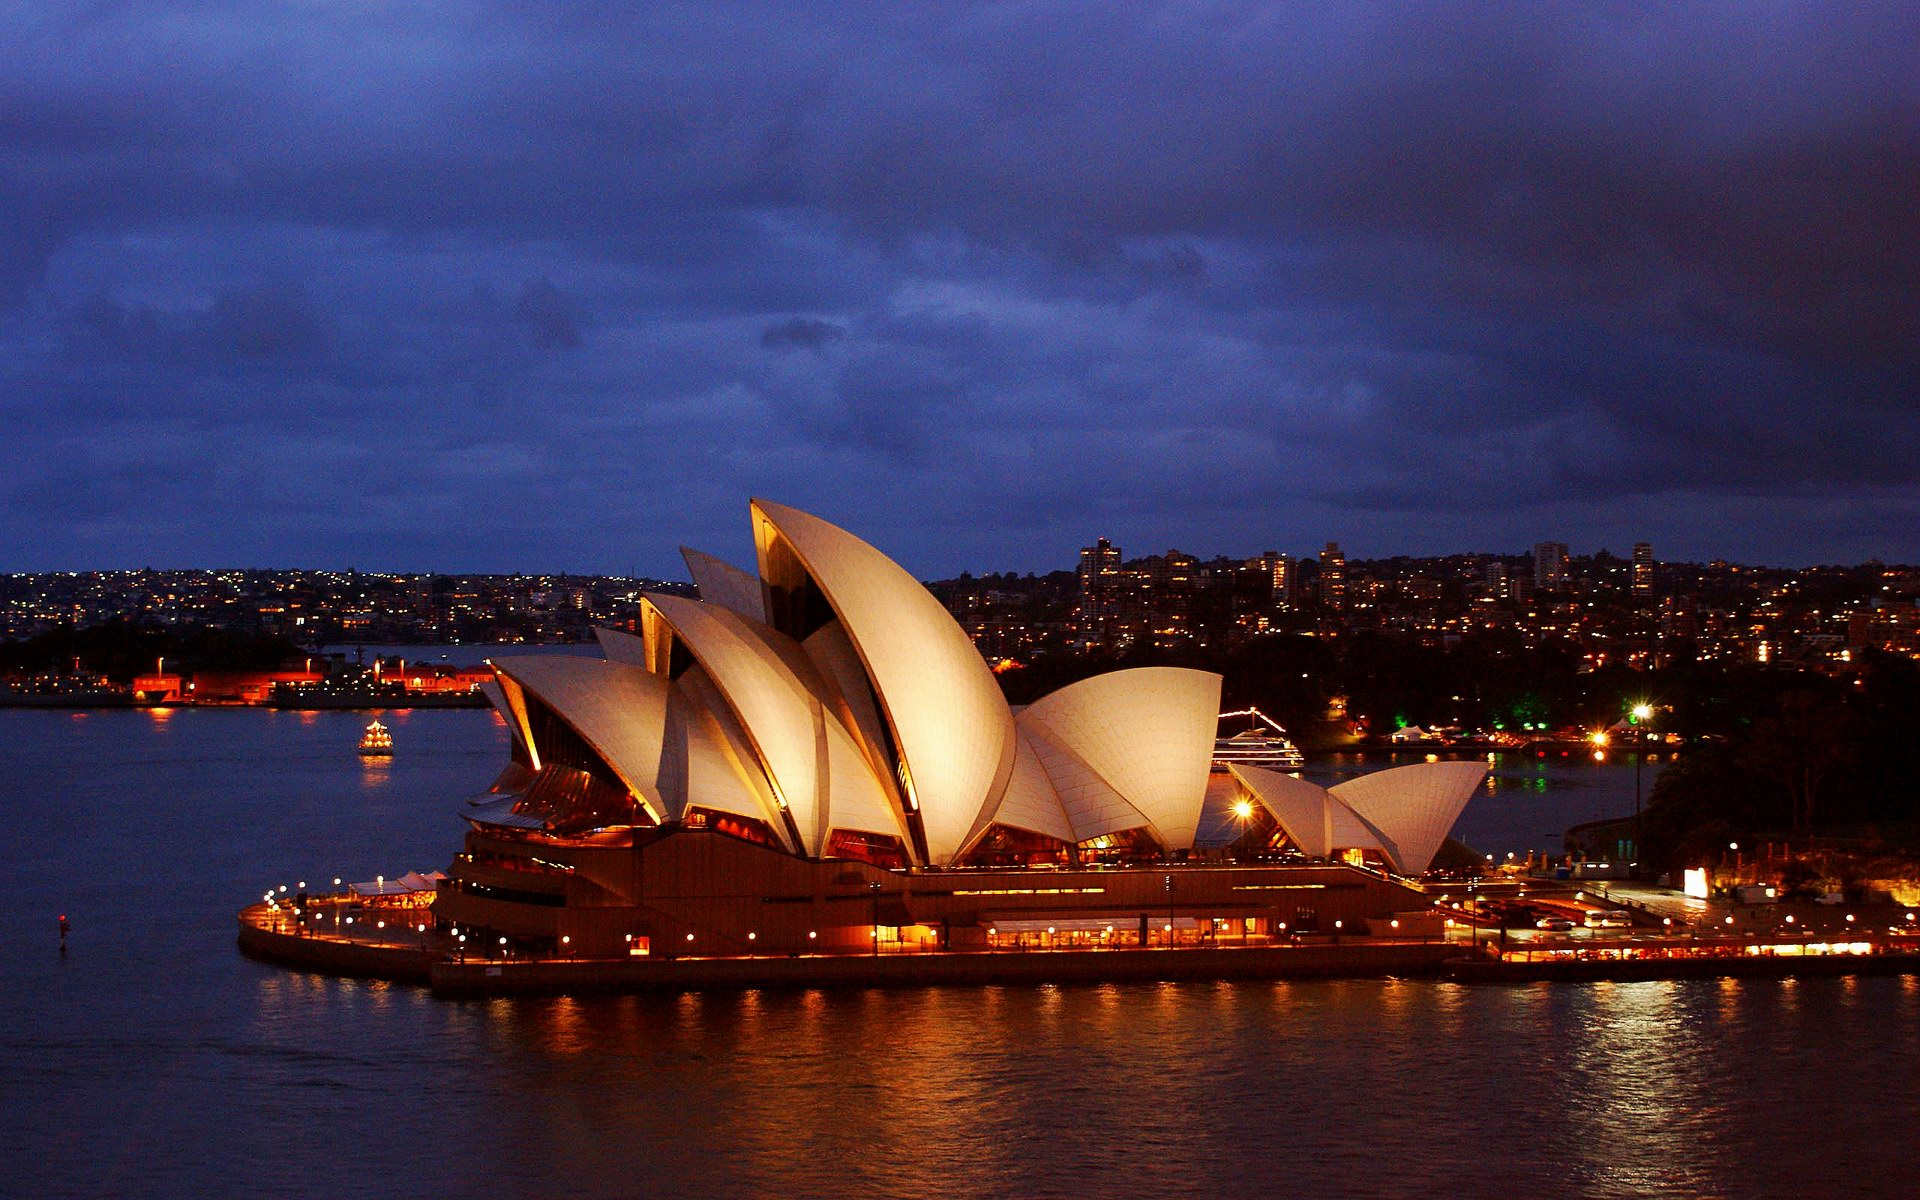 Sydney Opera House High Quality Wallpaper   Travel HD Wallpapers 1920x1200